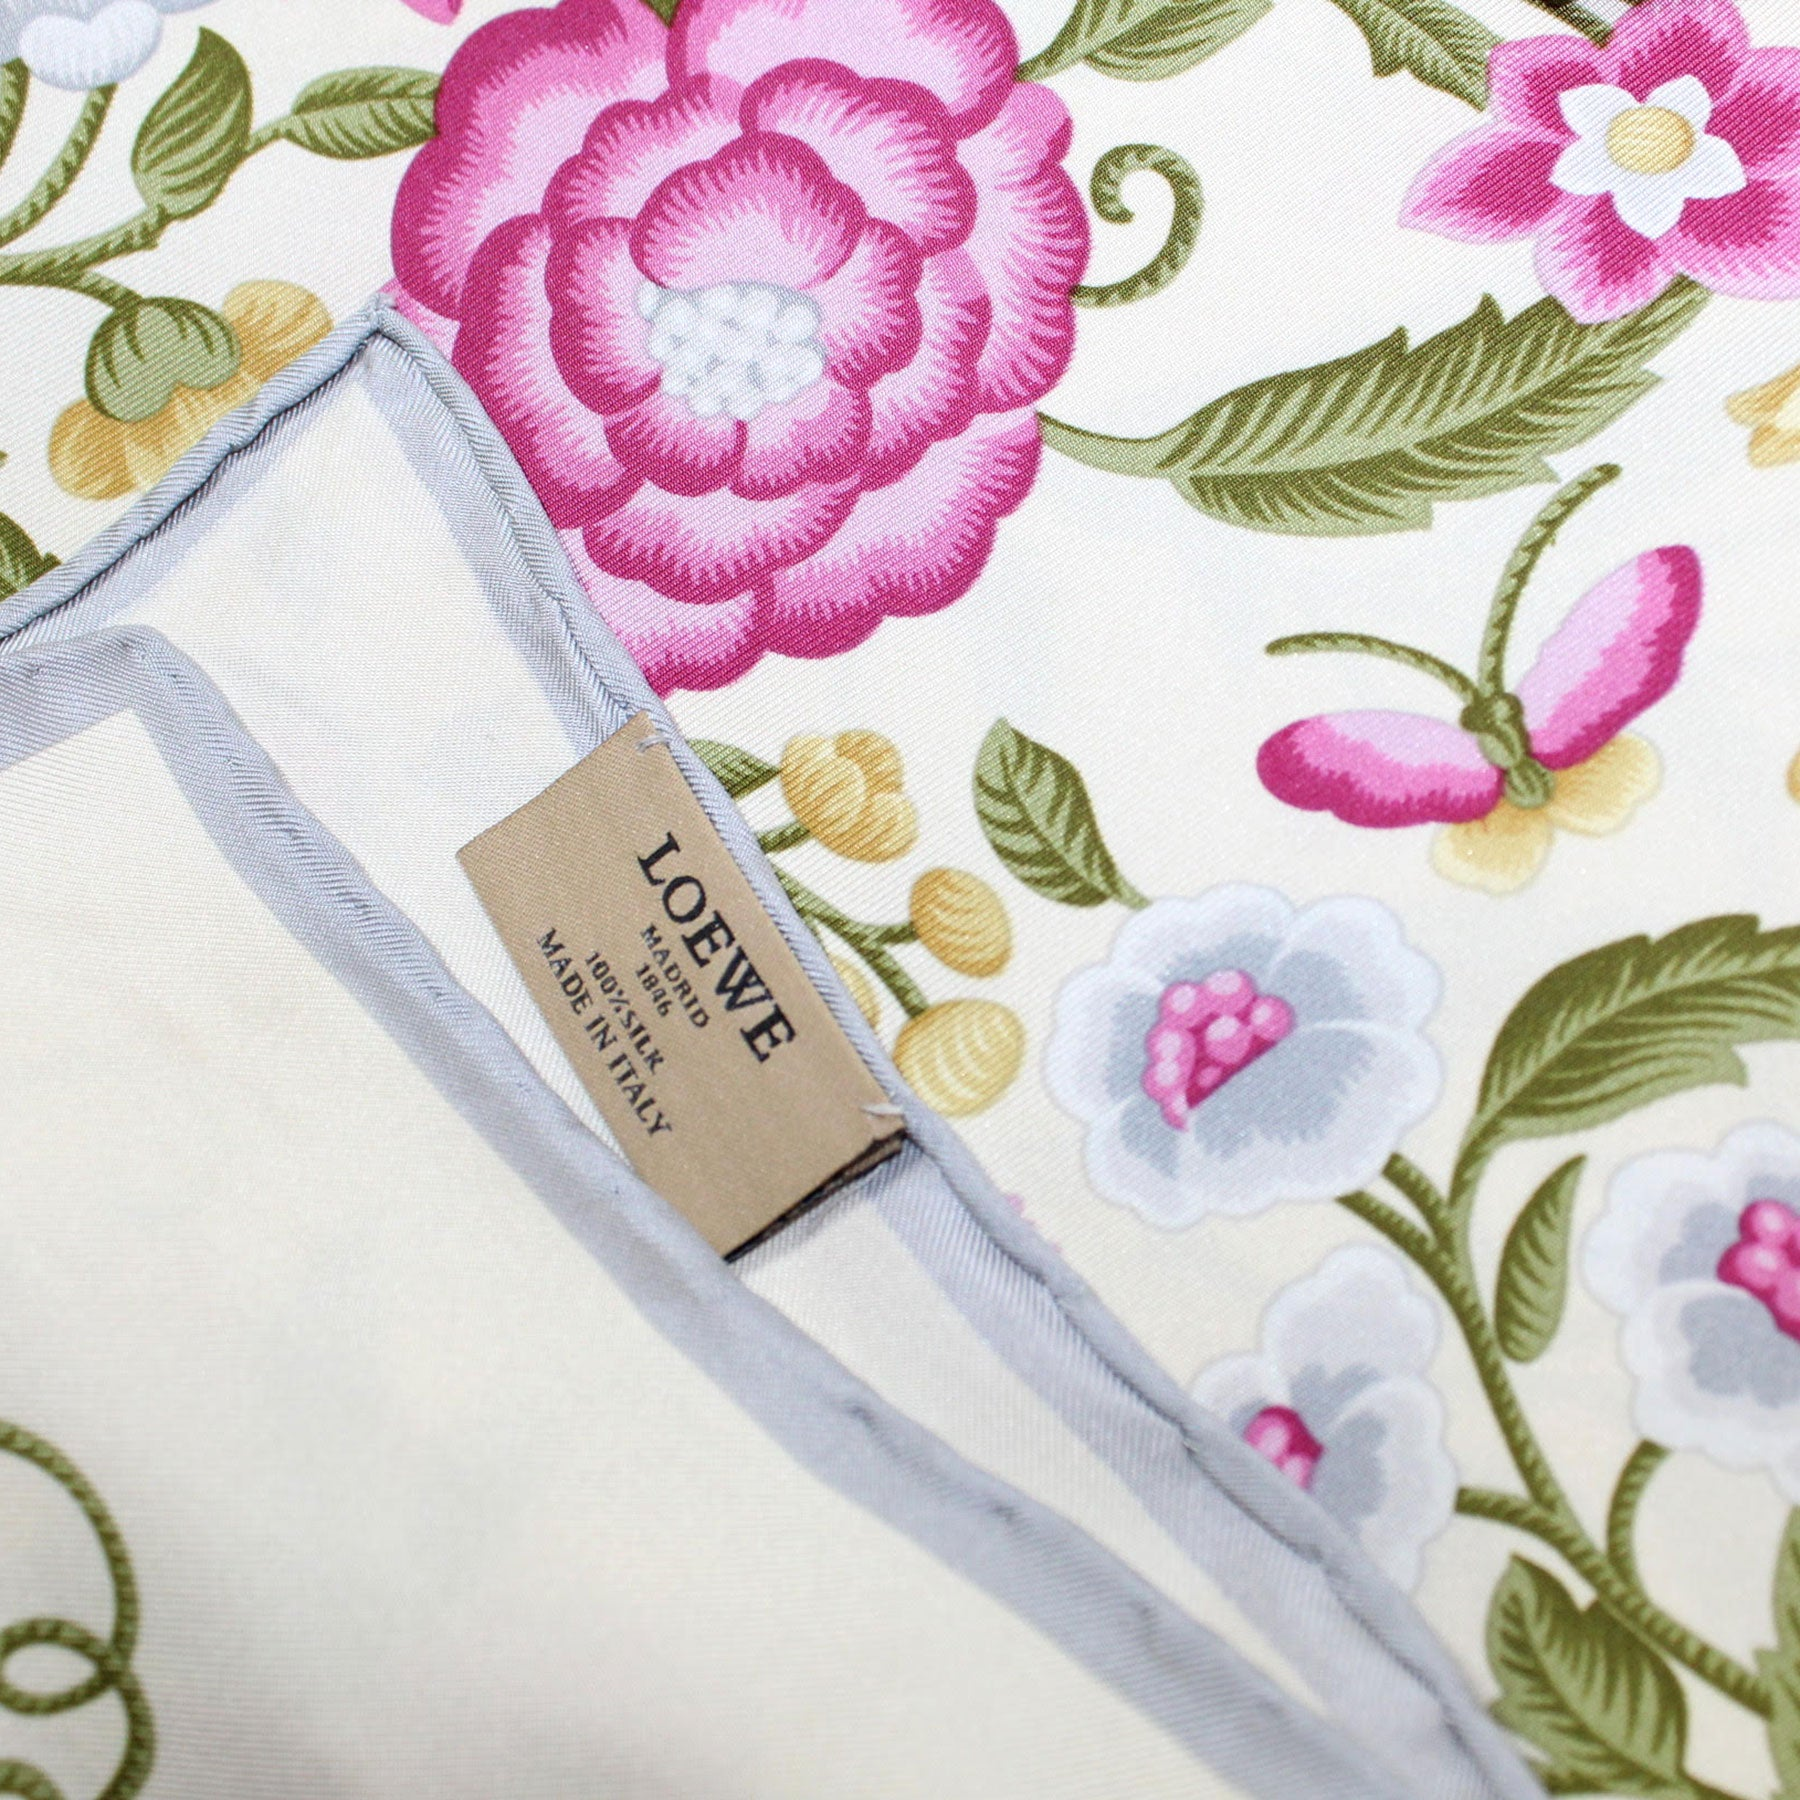 Loewe Silk Scarf Cream Pink Gray Floral - Large Square Scarf